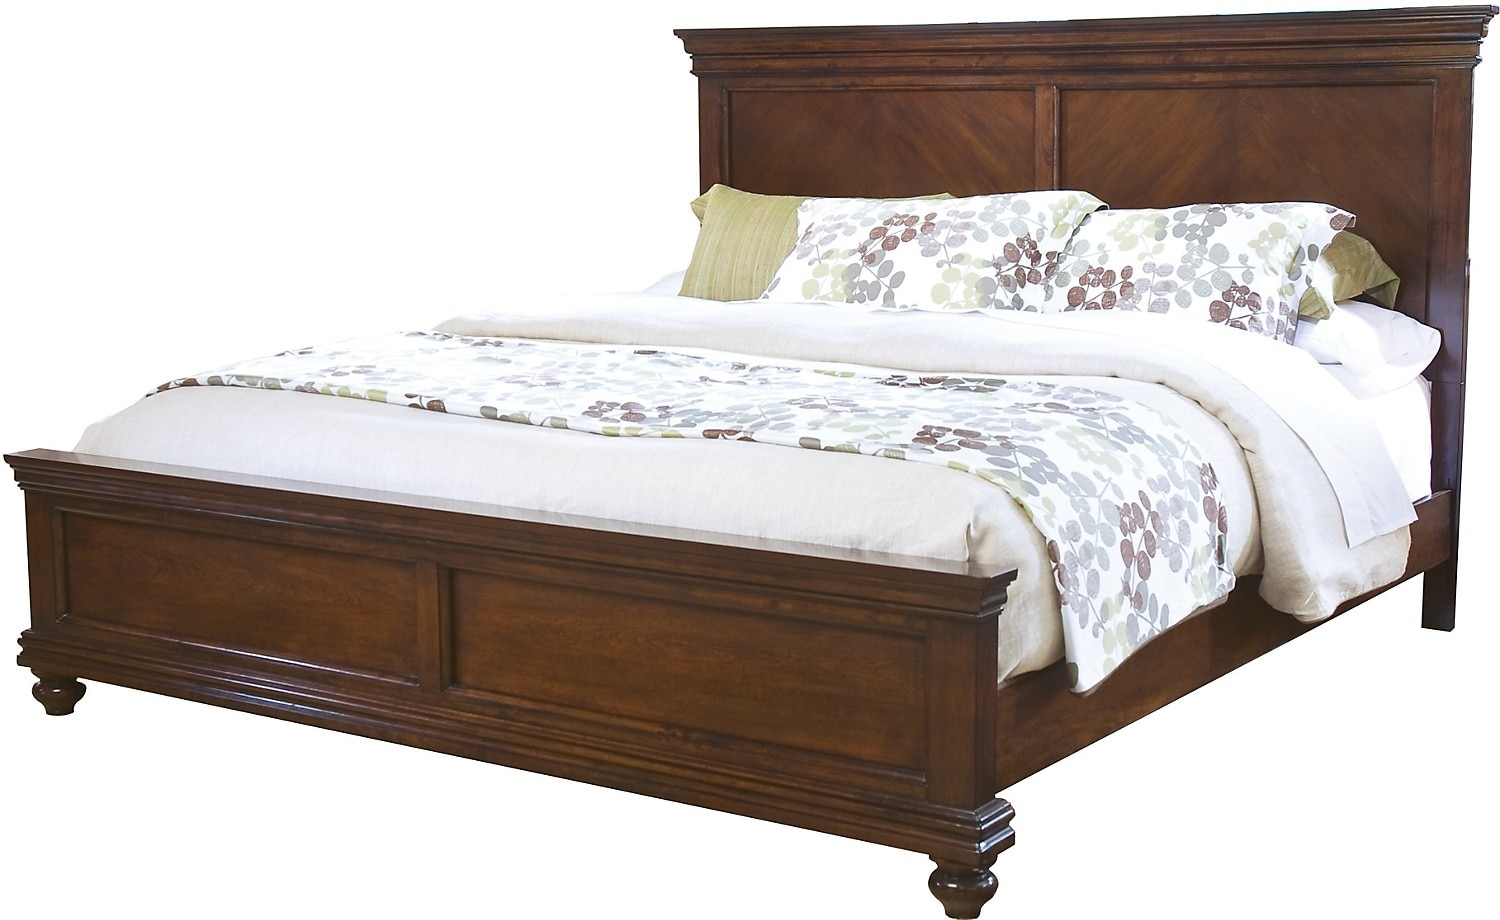 Bridgeport king sleigh bed the brick - Furniture bed image ...